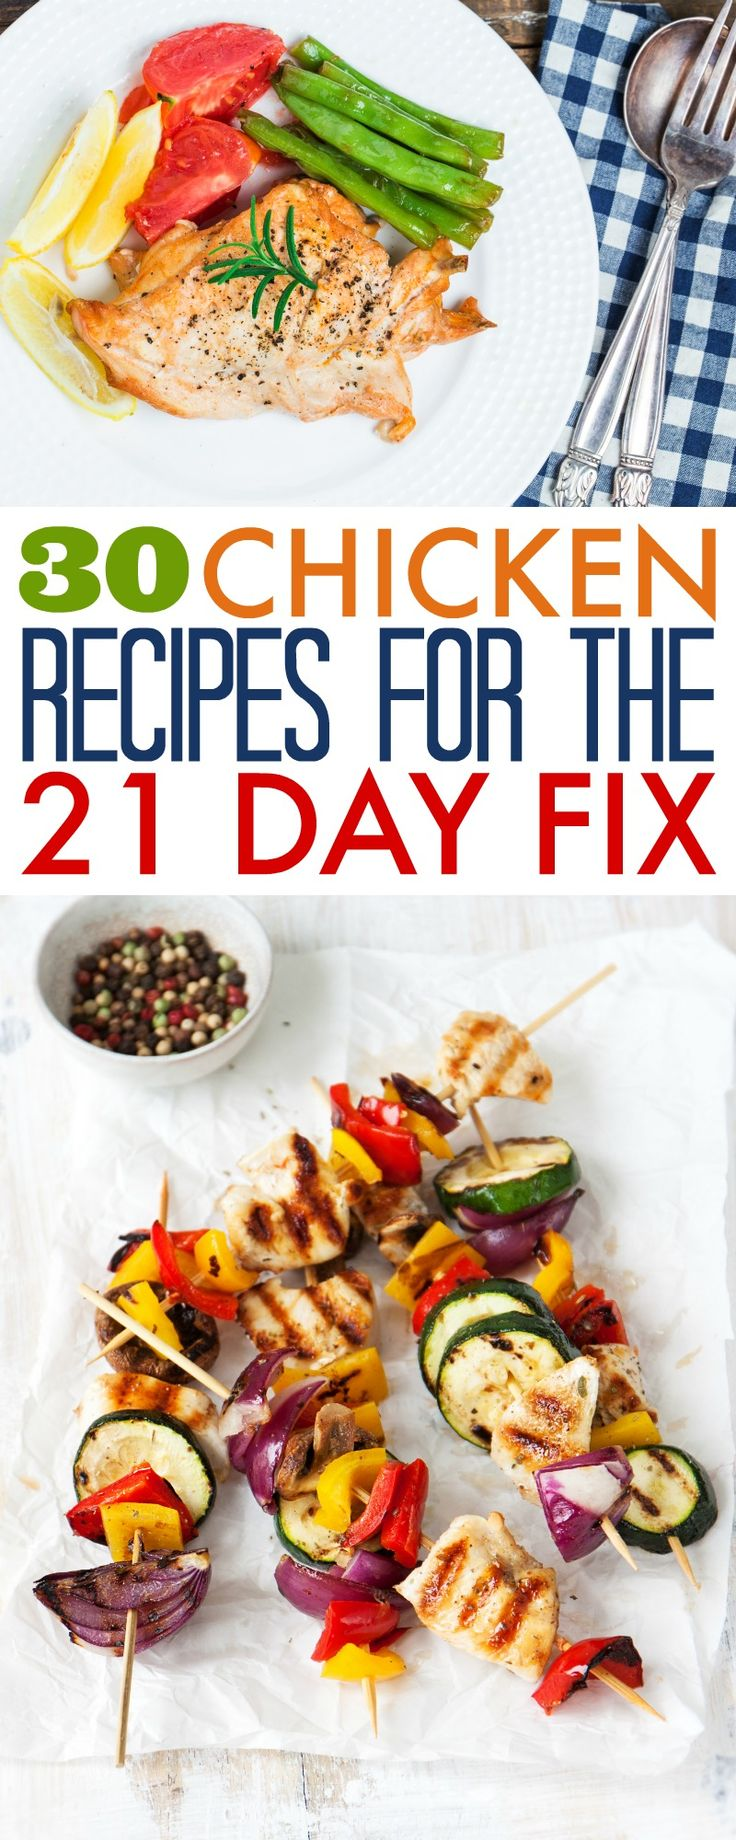 Cmwl recipes for chicken